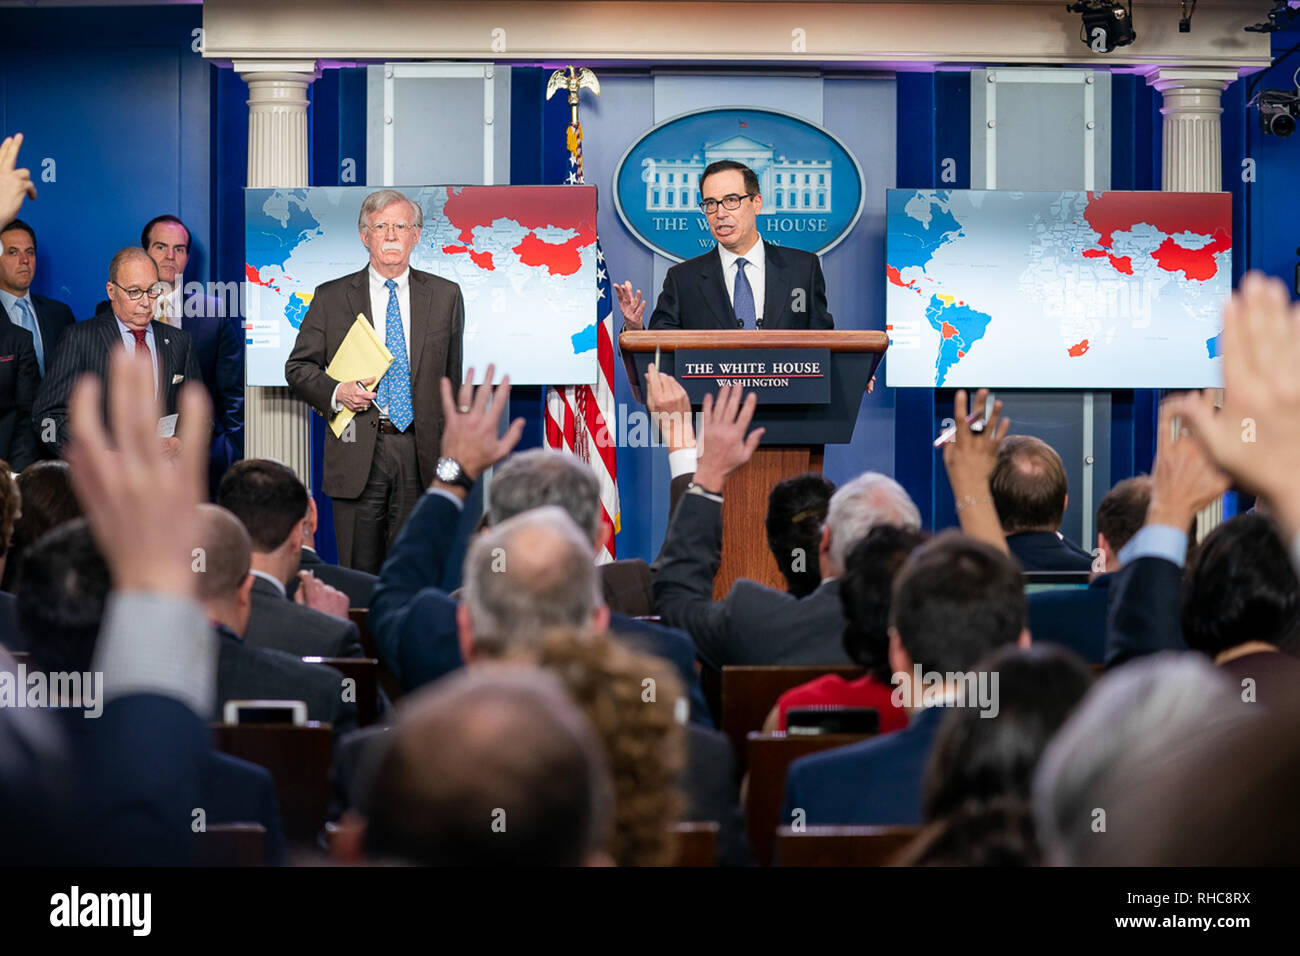 Secretary of the Treasury Steven Mnuchin, joined by National Security Advisor John Bolton and Director of the National Economic Council Larry Kudlow, addresses reporters in the James S. Brady Press Briefing Room at the White House Monday, Jan. 28, 2019, to announce additional steps to address the national emergency with respect to Venezuela.   People:  Secretary of the Treasury Steven Mnuchin, - Stock Image